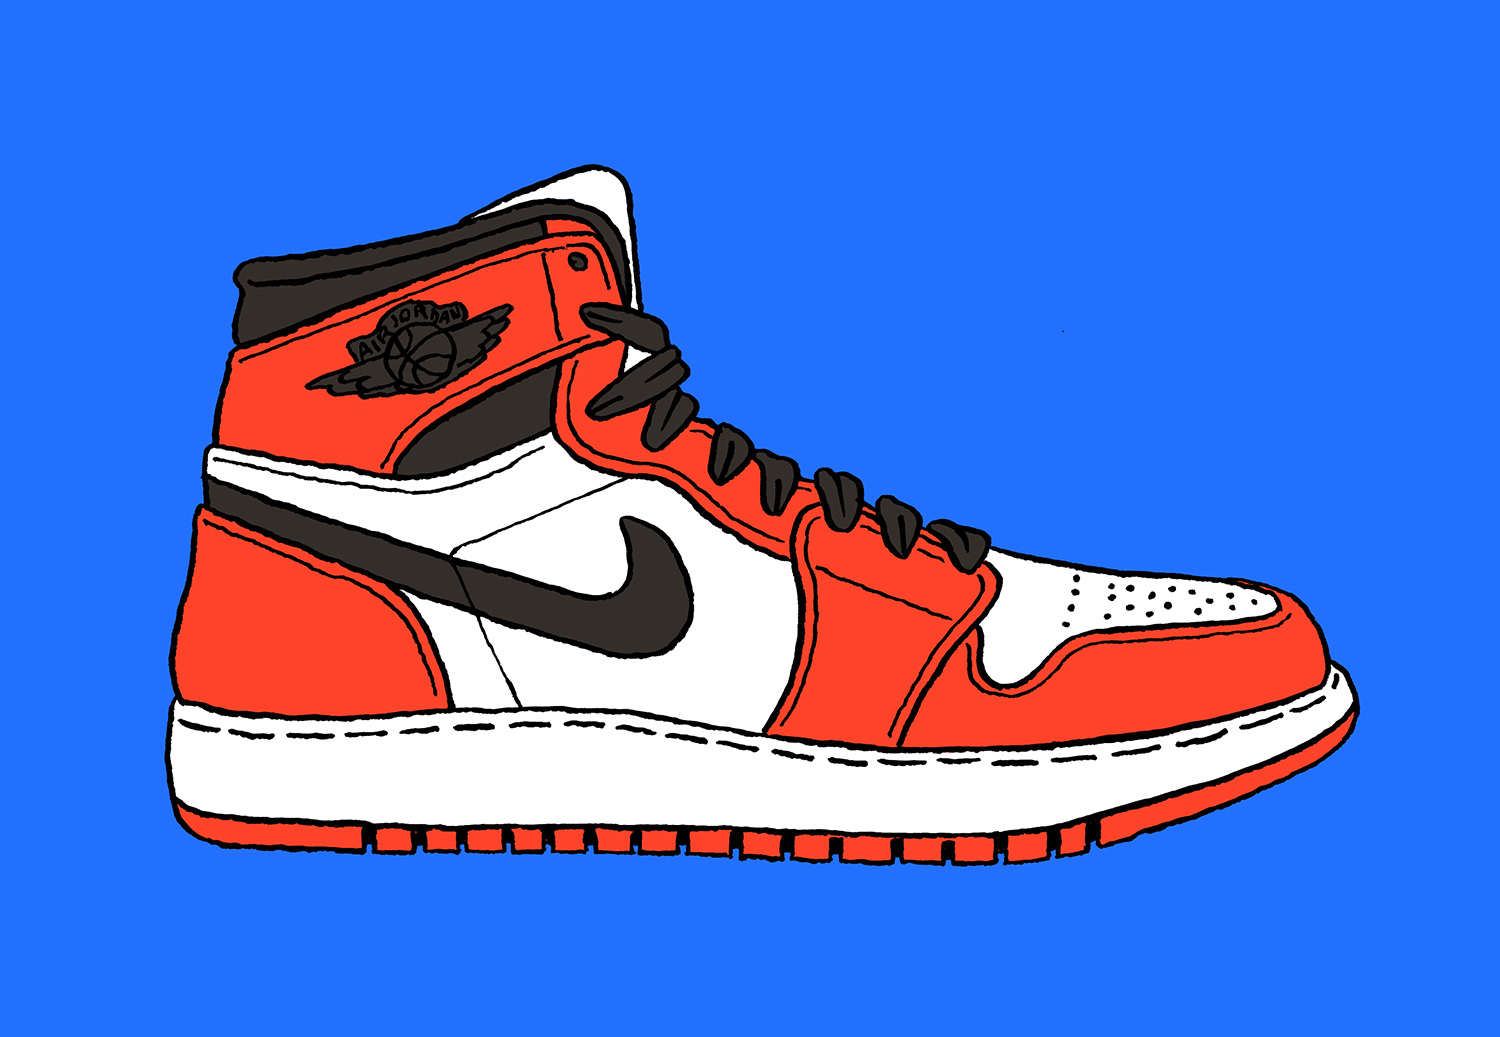 Drawings Of Basketball Shoes